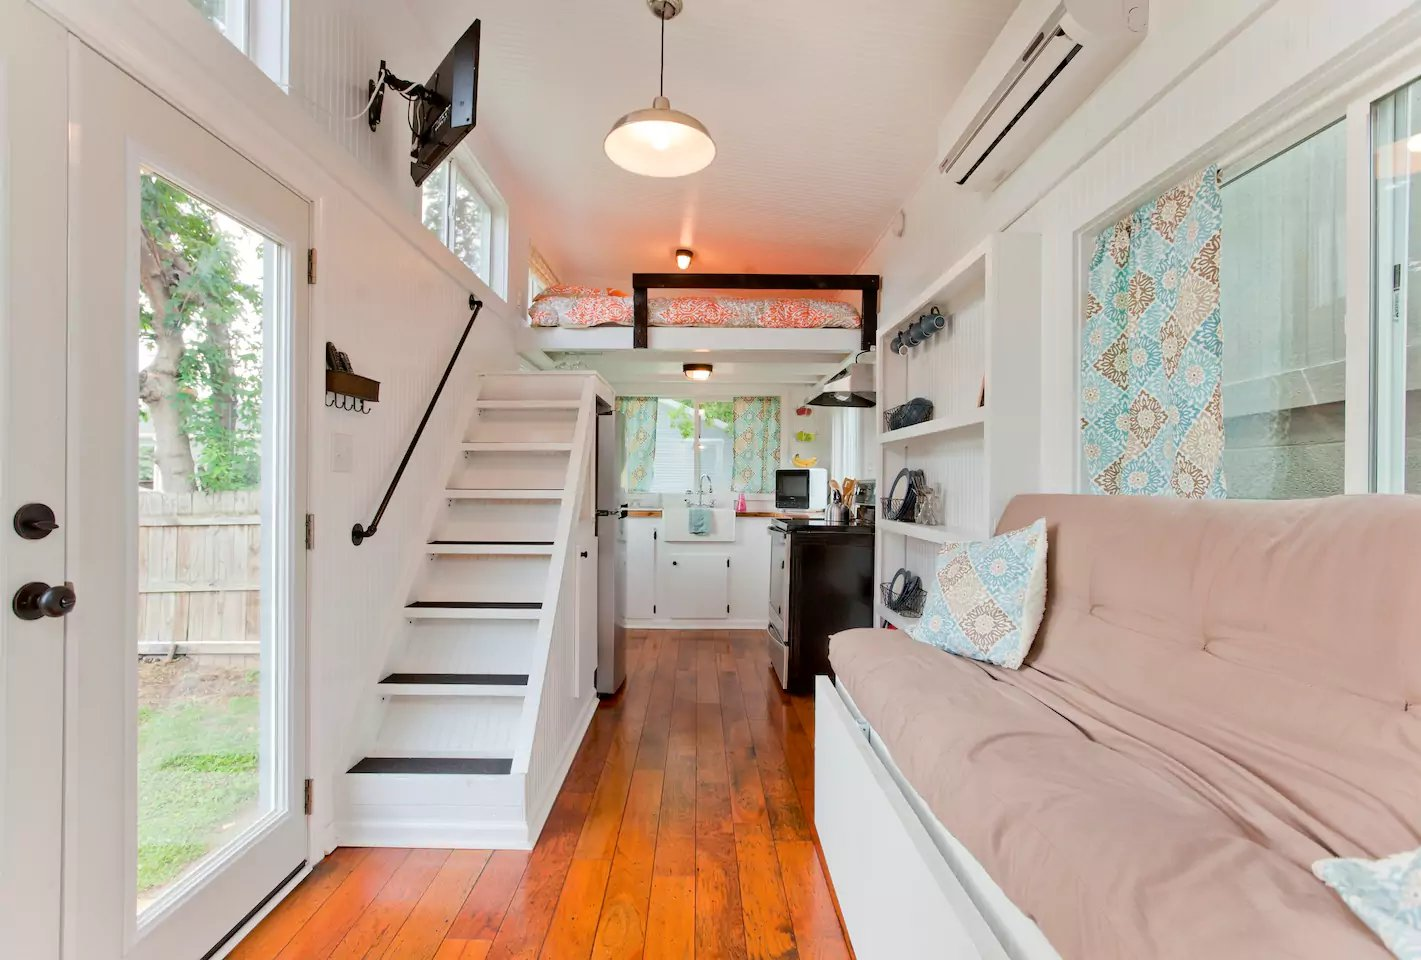 Music_City_Tennessee_Tiny_Home_Inside_1.jpg